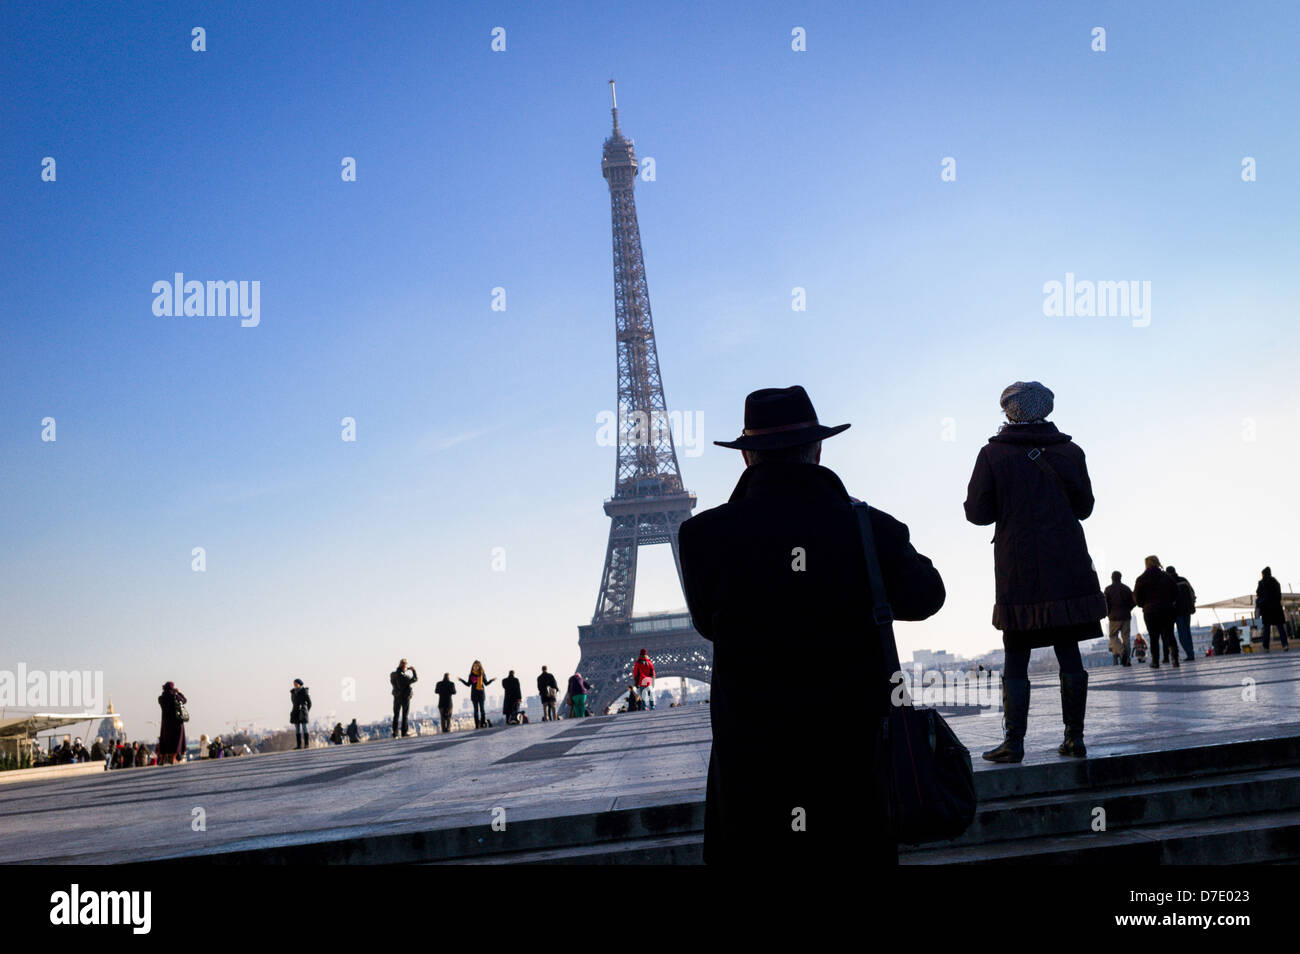 Tourists photographing The Eiffel Tower from Place du Trocadéro. - Stock Image